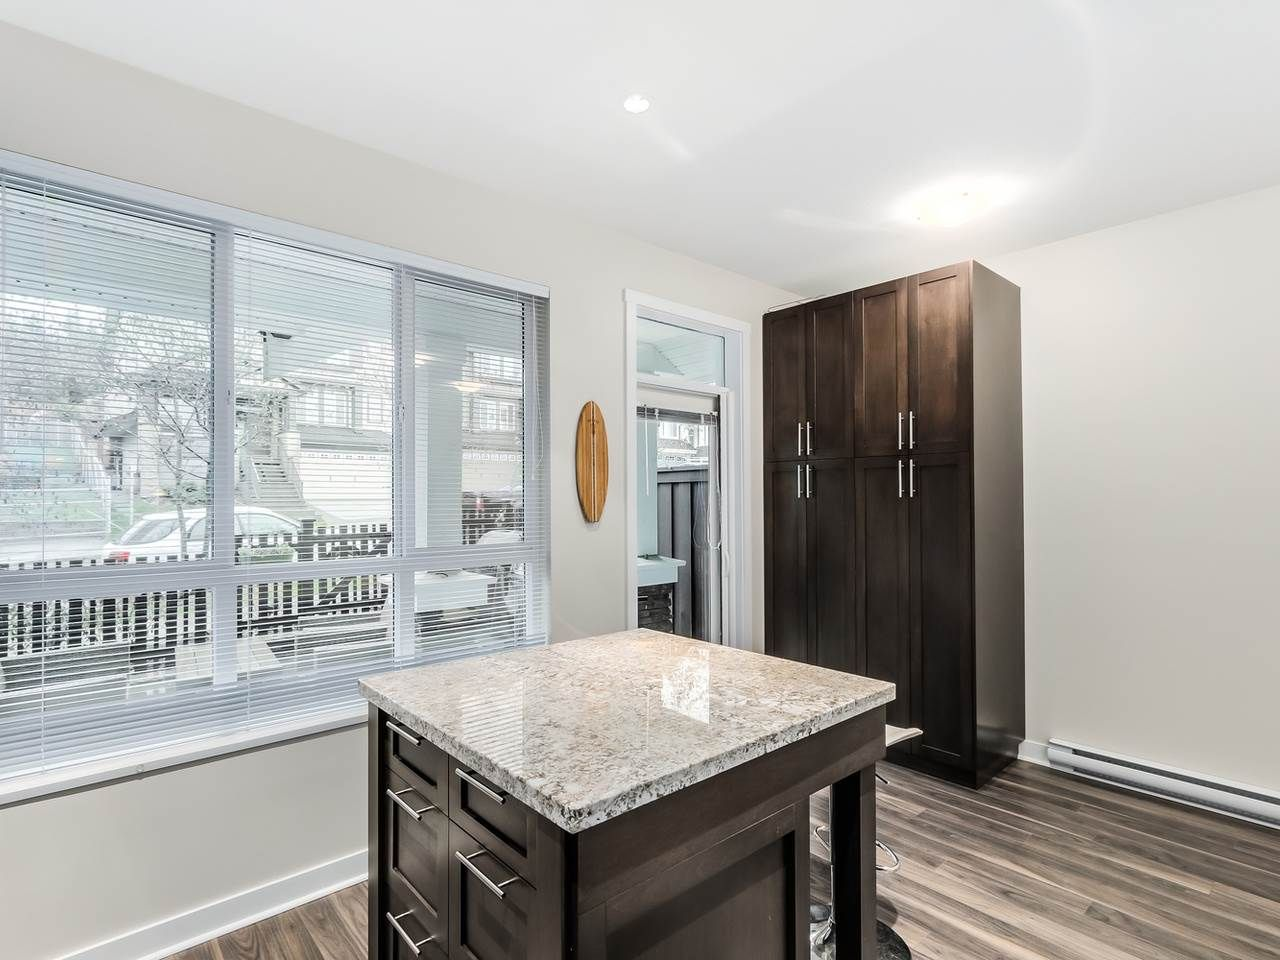 """Photo 10: Photos: 102 1480 SOUTHVIEW Street in Coquitlam: Burke Mountain Townhouse for sale in """"CEDAR CREEK NORTH"""" : MLS®# R2016018"""